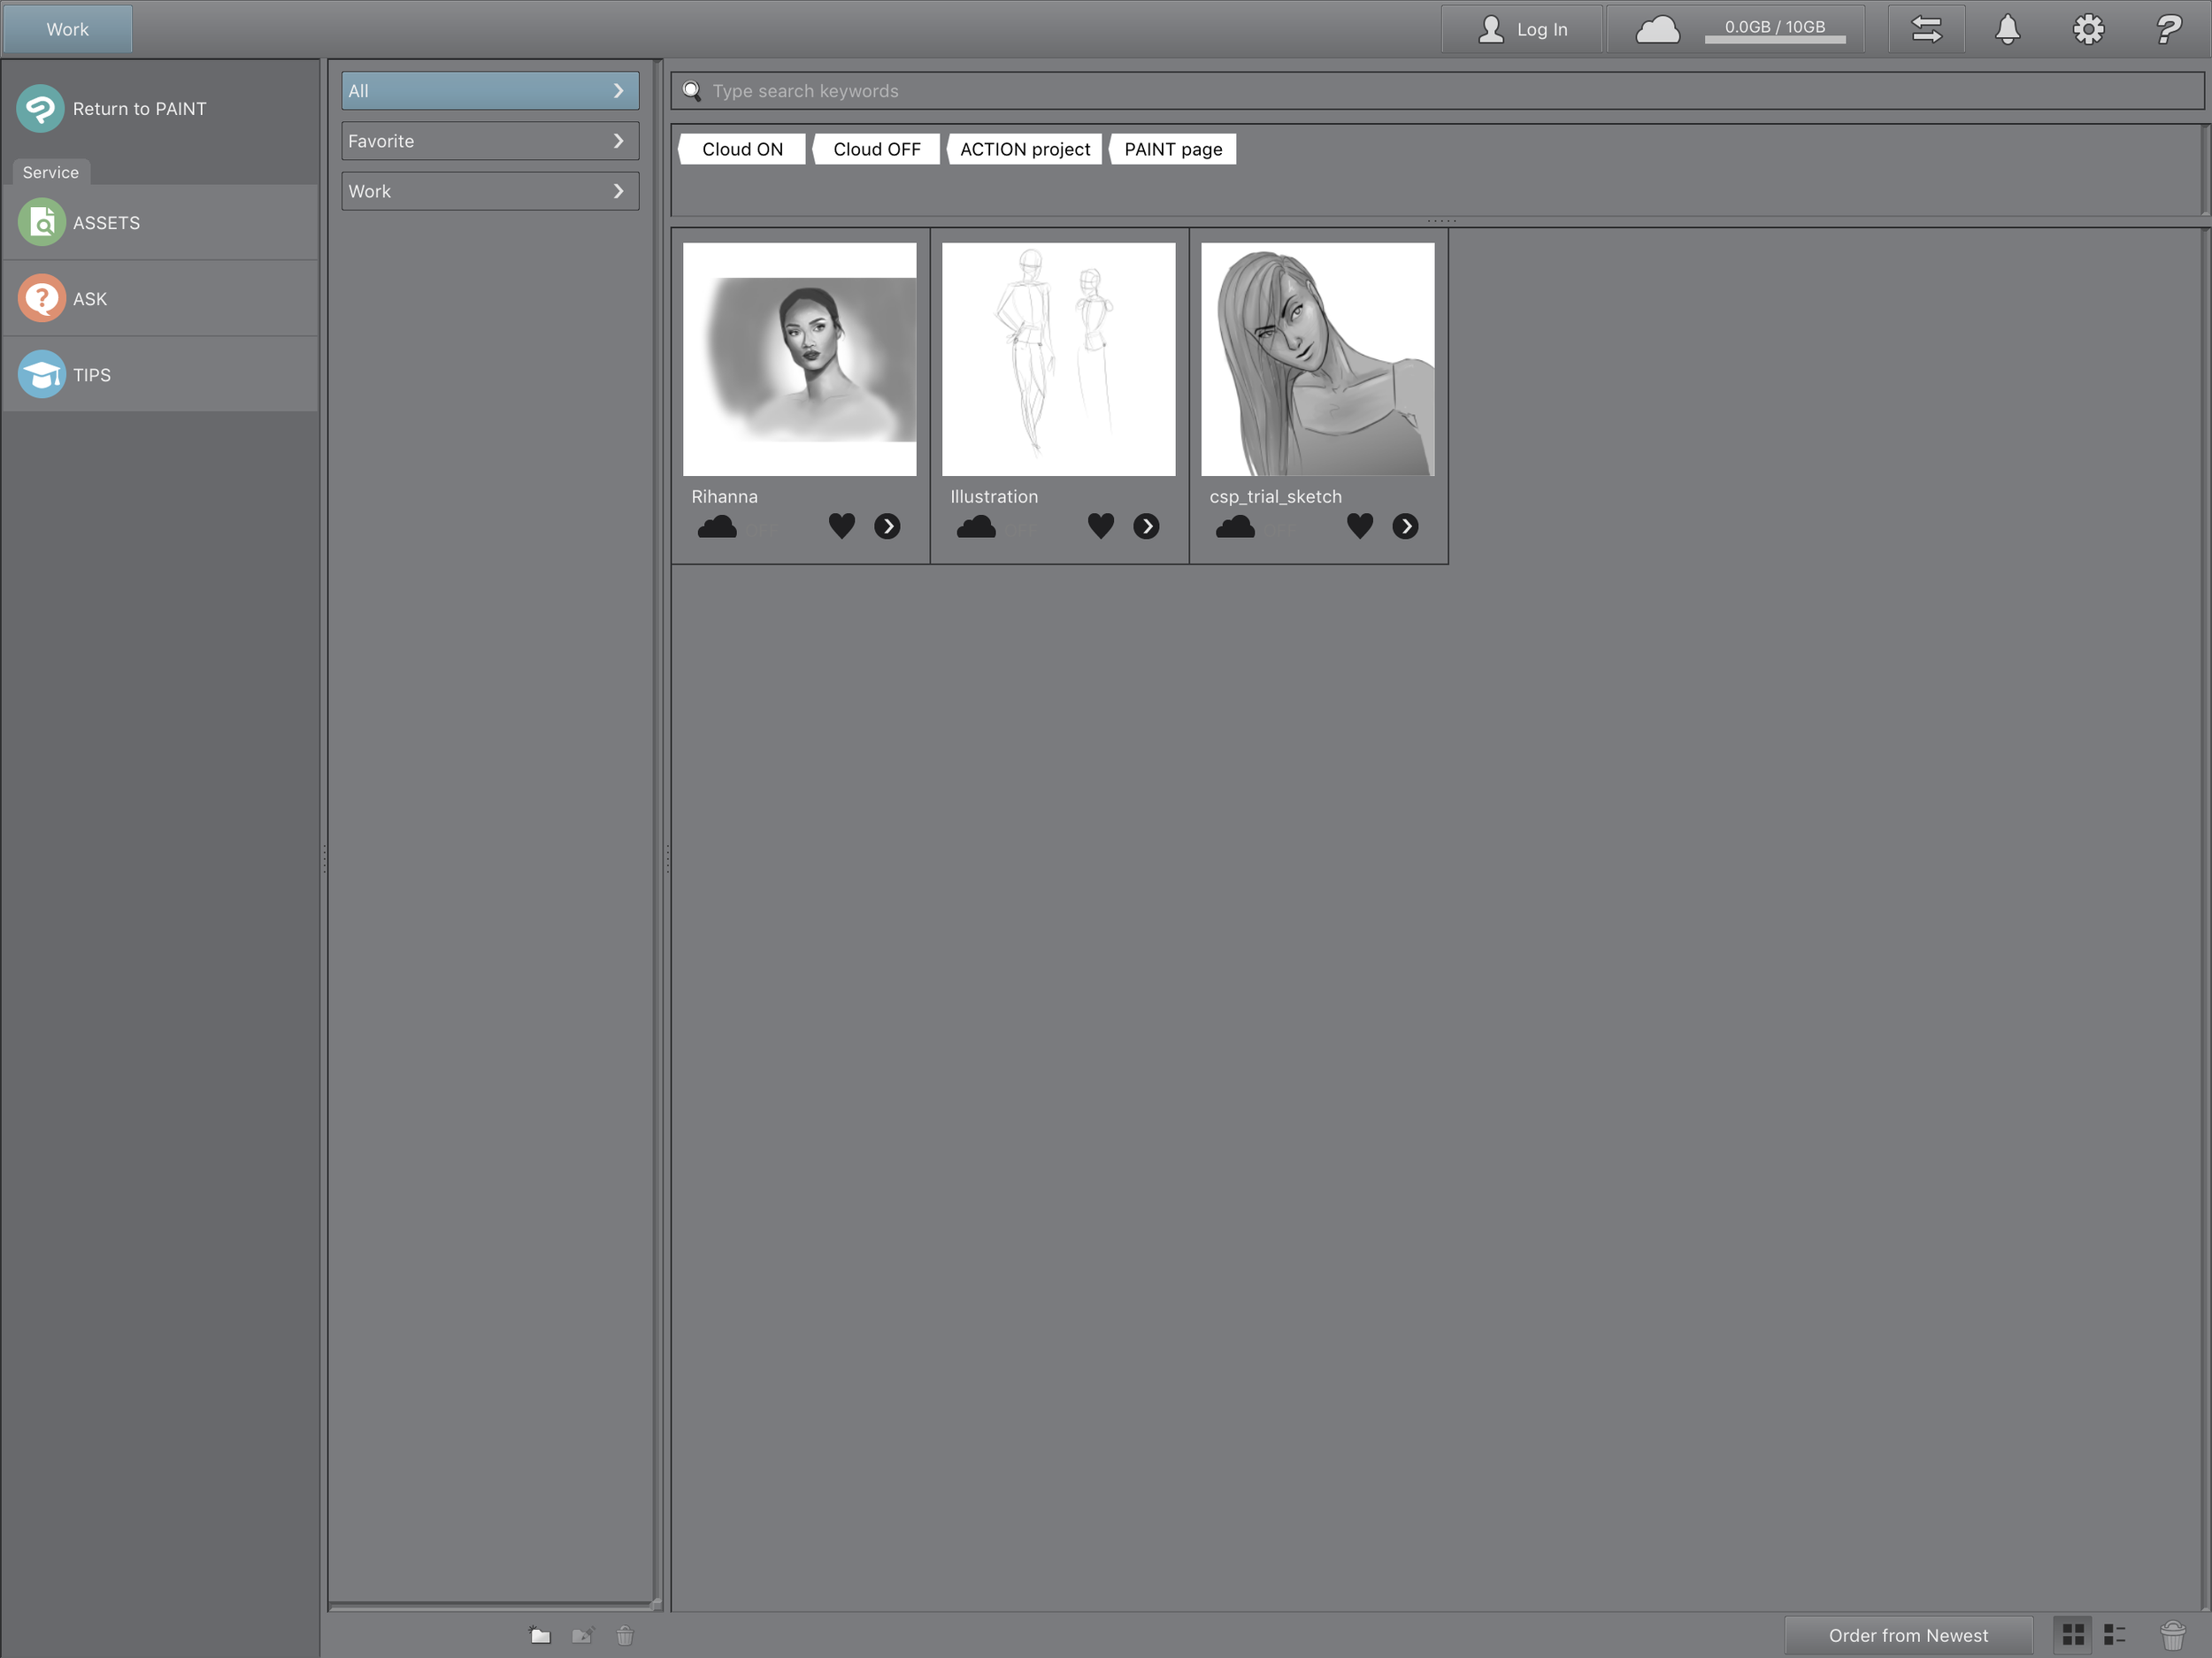 Accessing the Clip Studio Assets.